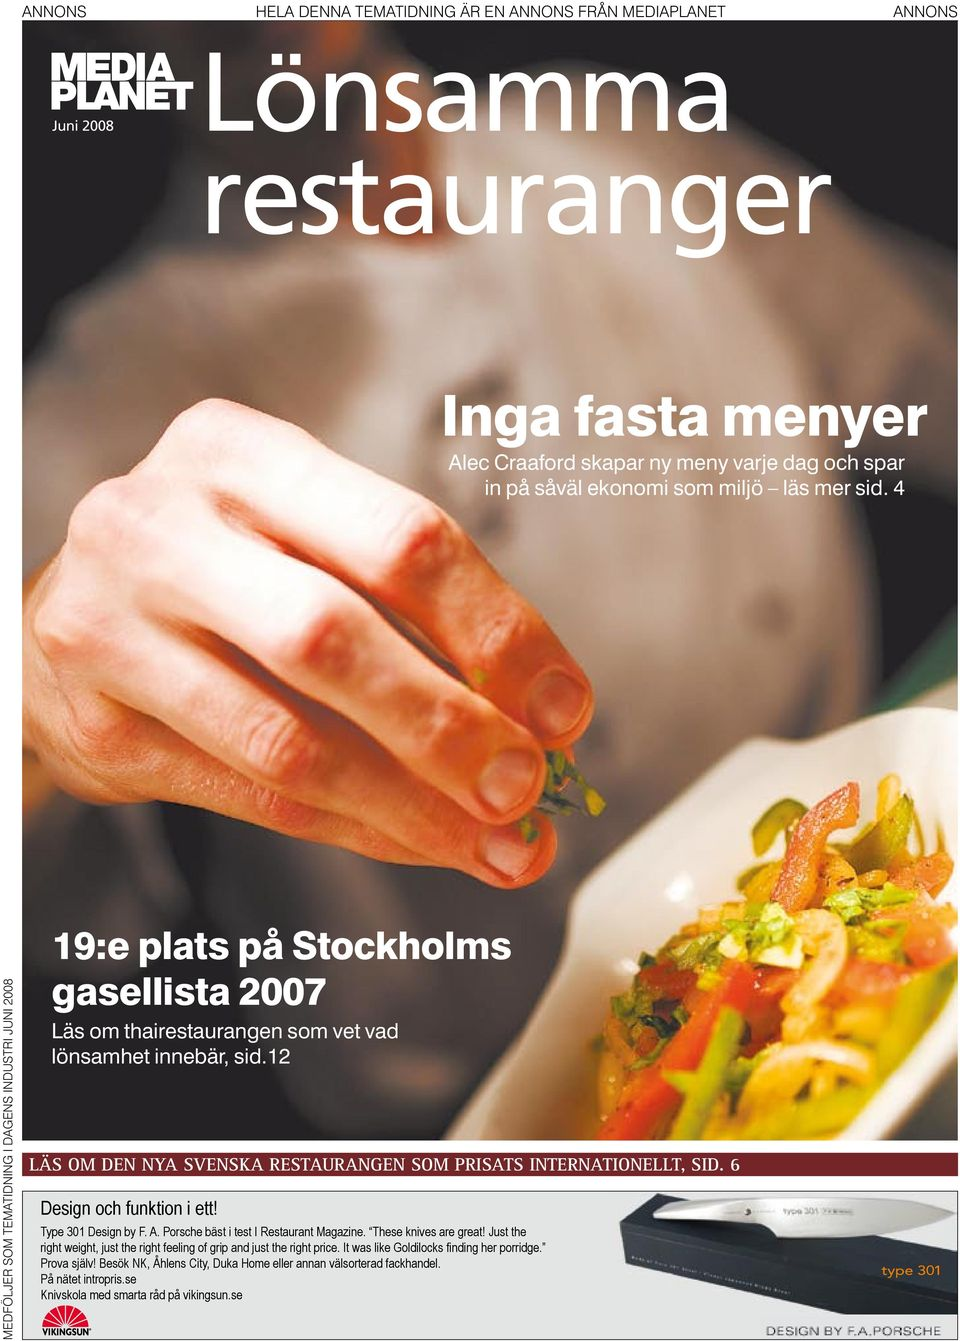 12 LÄS OM DEN NYA SVENSKA RESTAURANGEN SOM PRISATS INTERNATIONELLT, SID. 6 Design och funktion i ett! Type 301 Design by F. A. Porsche bäst i test I Restaurant Magazine. These knives are great!